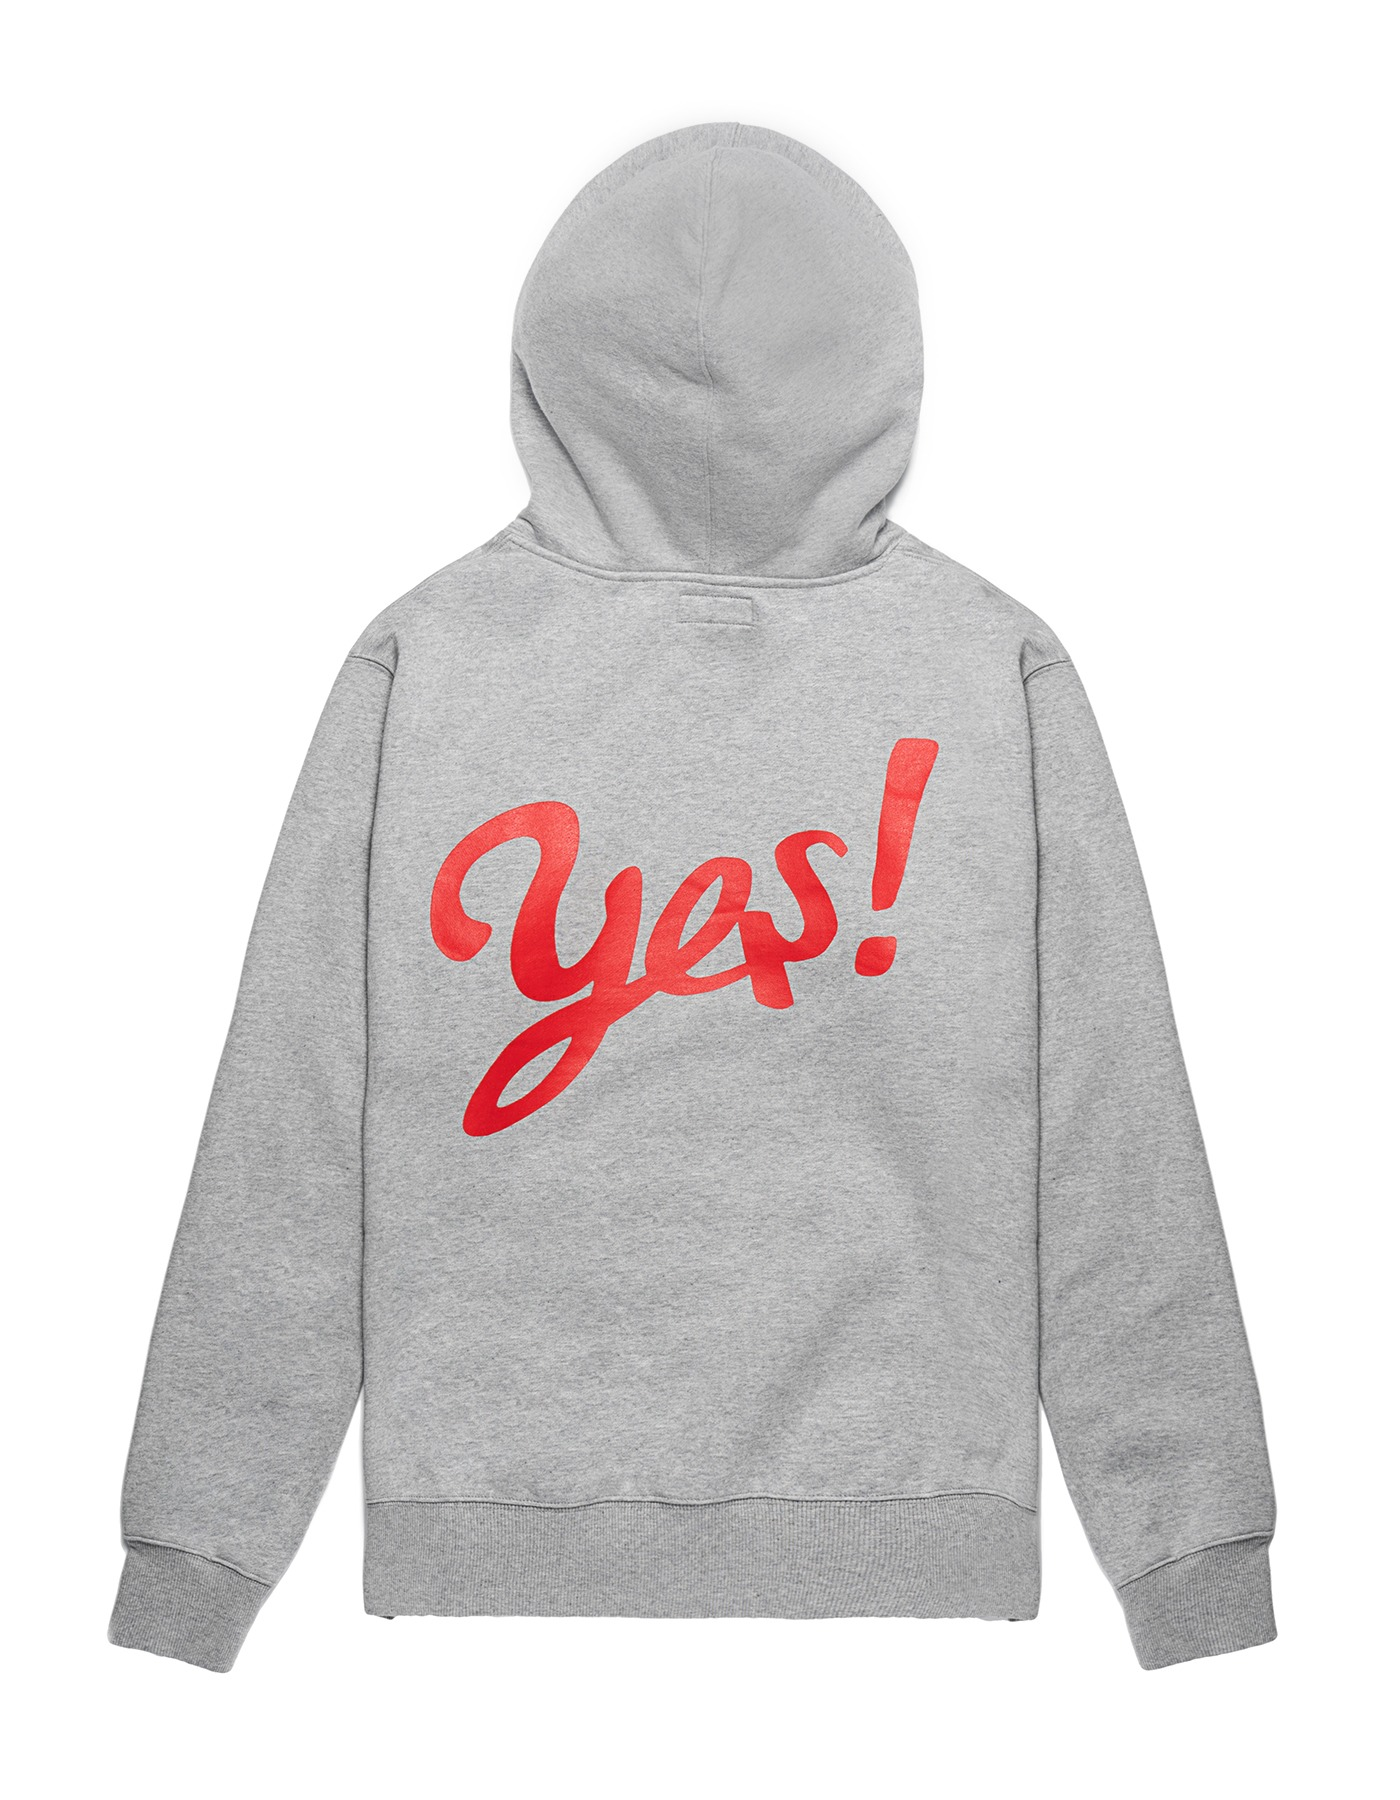 Yes! Hoodie - Grey/Red